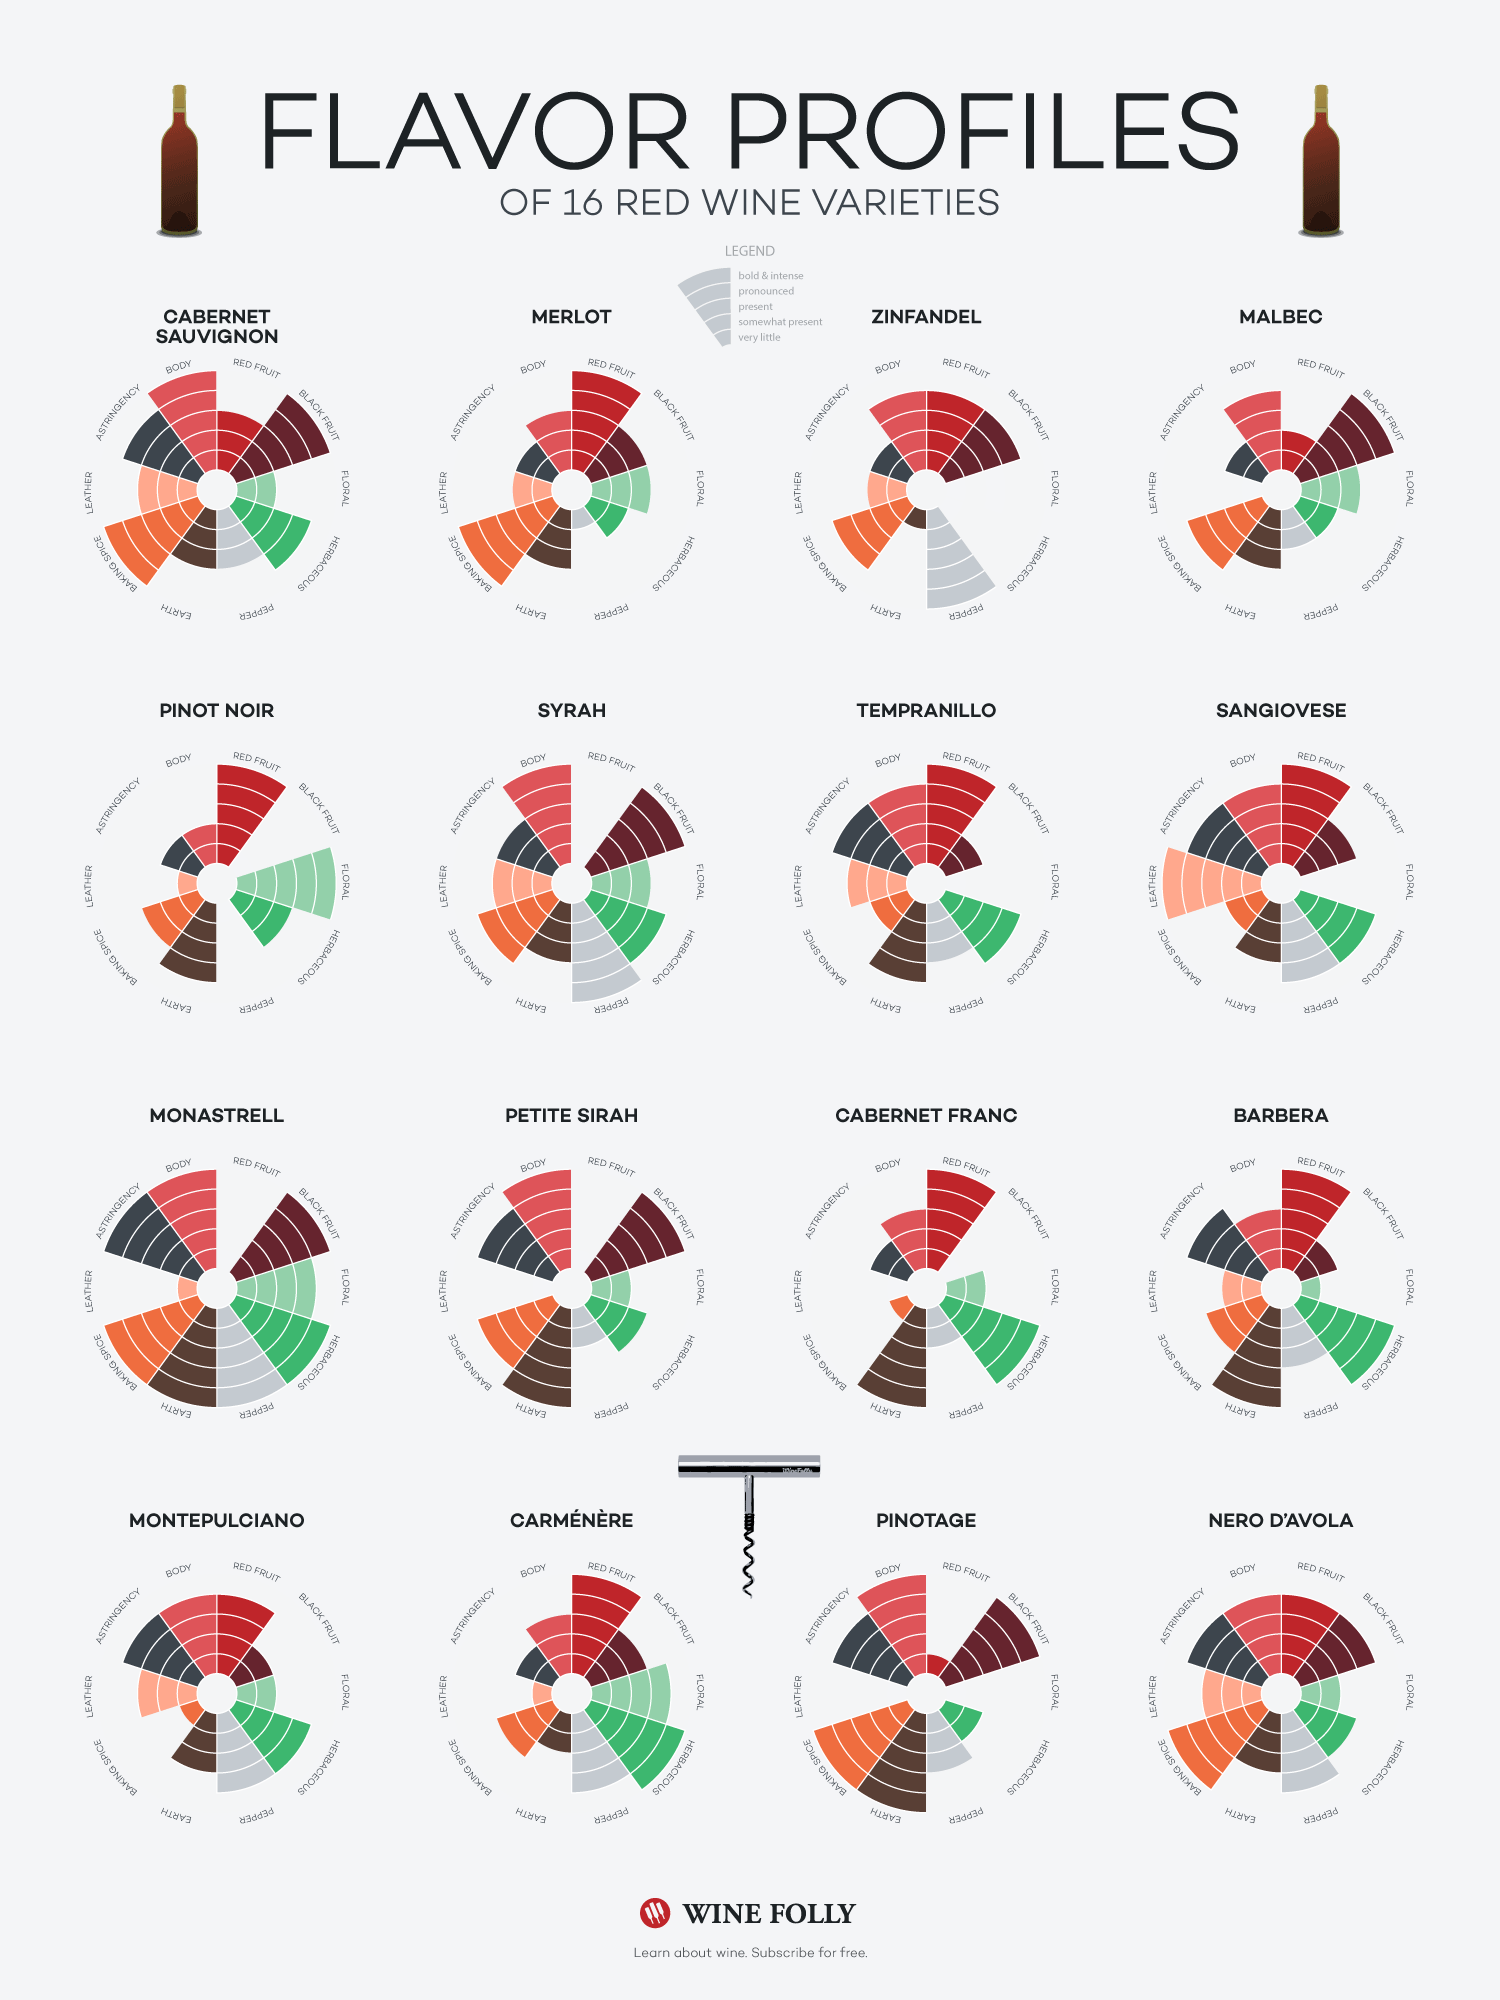 Flavor Profiles Of Red Wines Infographic By Ks Loves Wine Wine Folly Medium